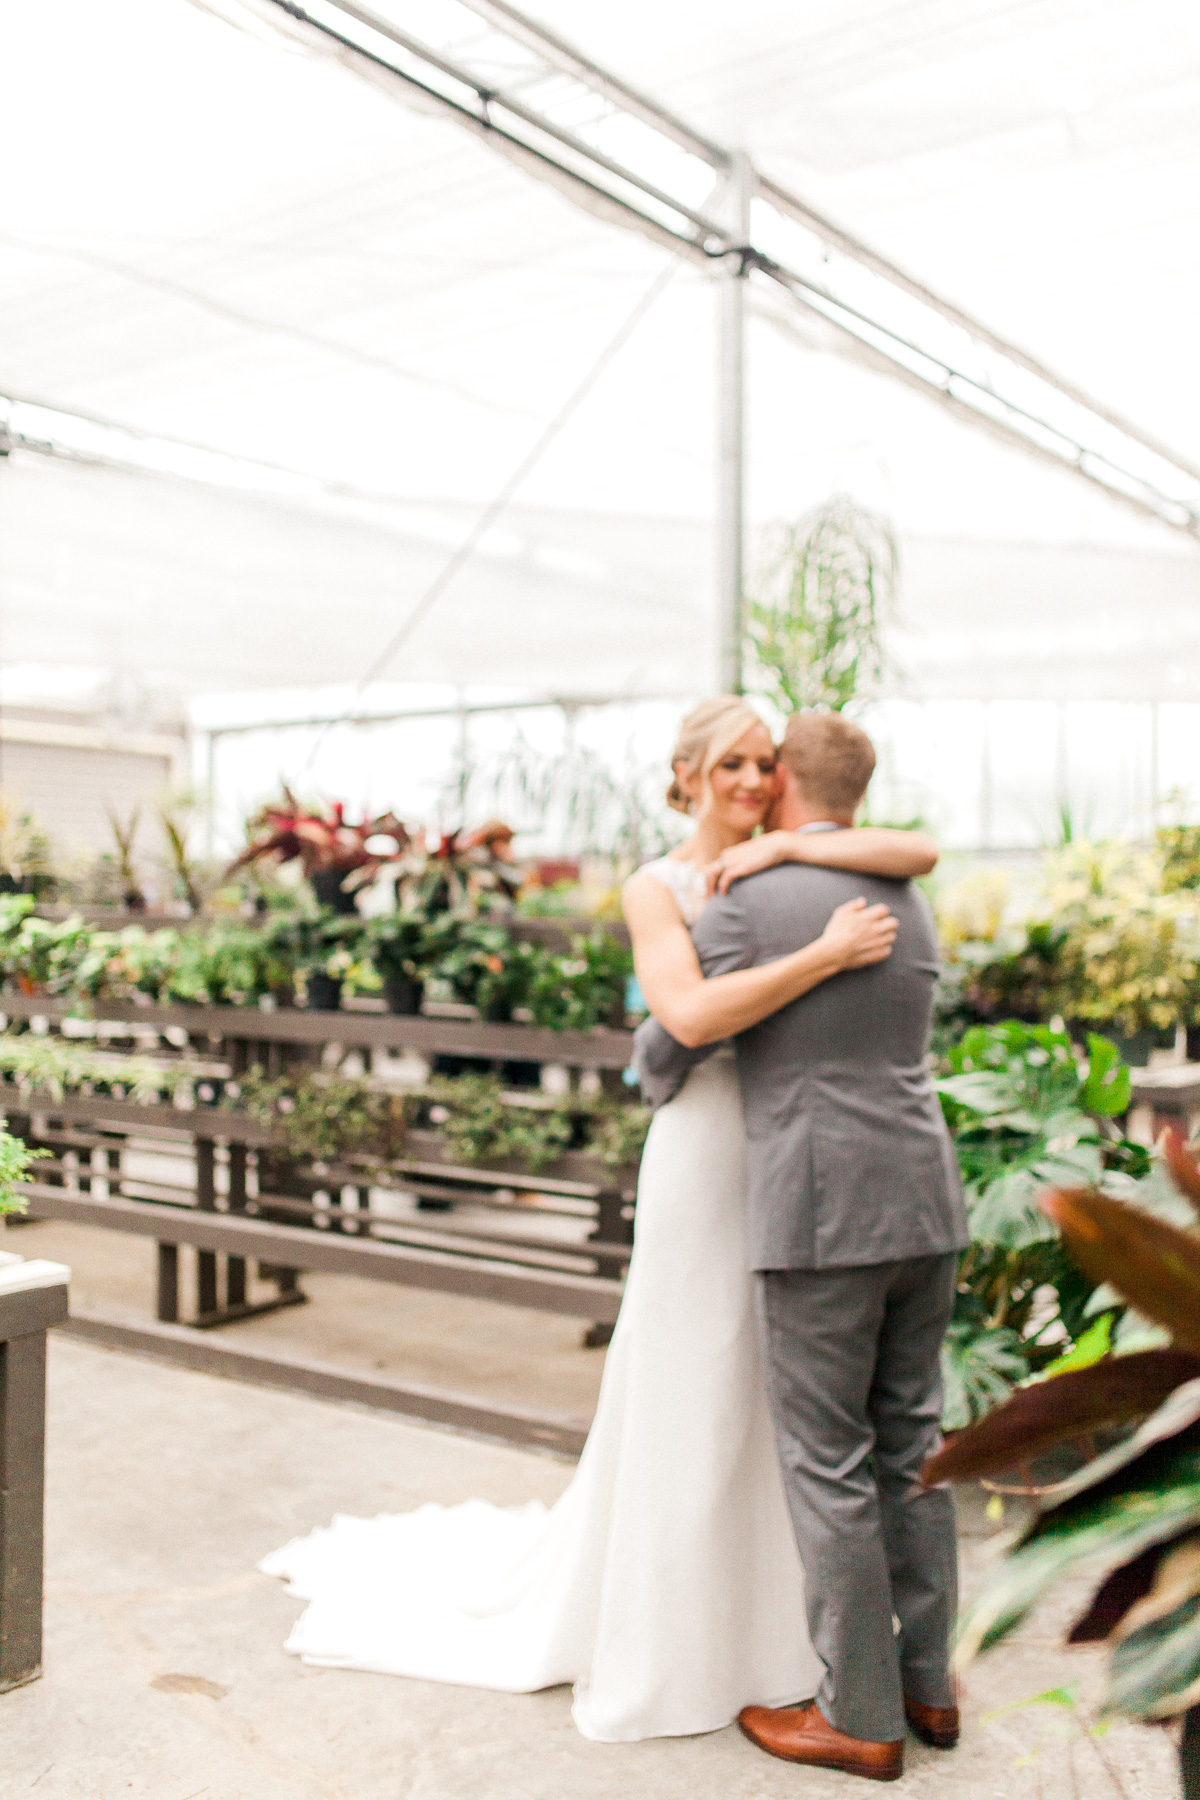 cielos-garden-wedding-winnipeg-wedding-photographer-keila-marie-photgraphy